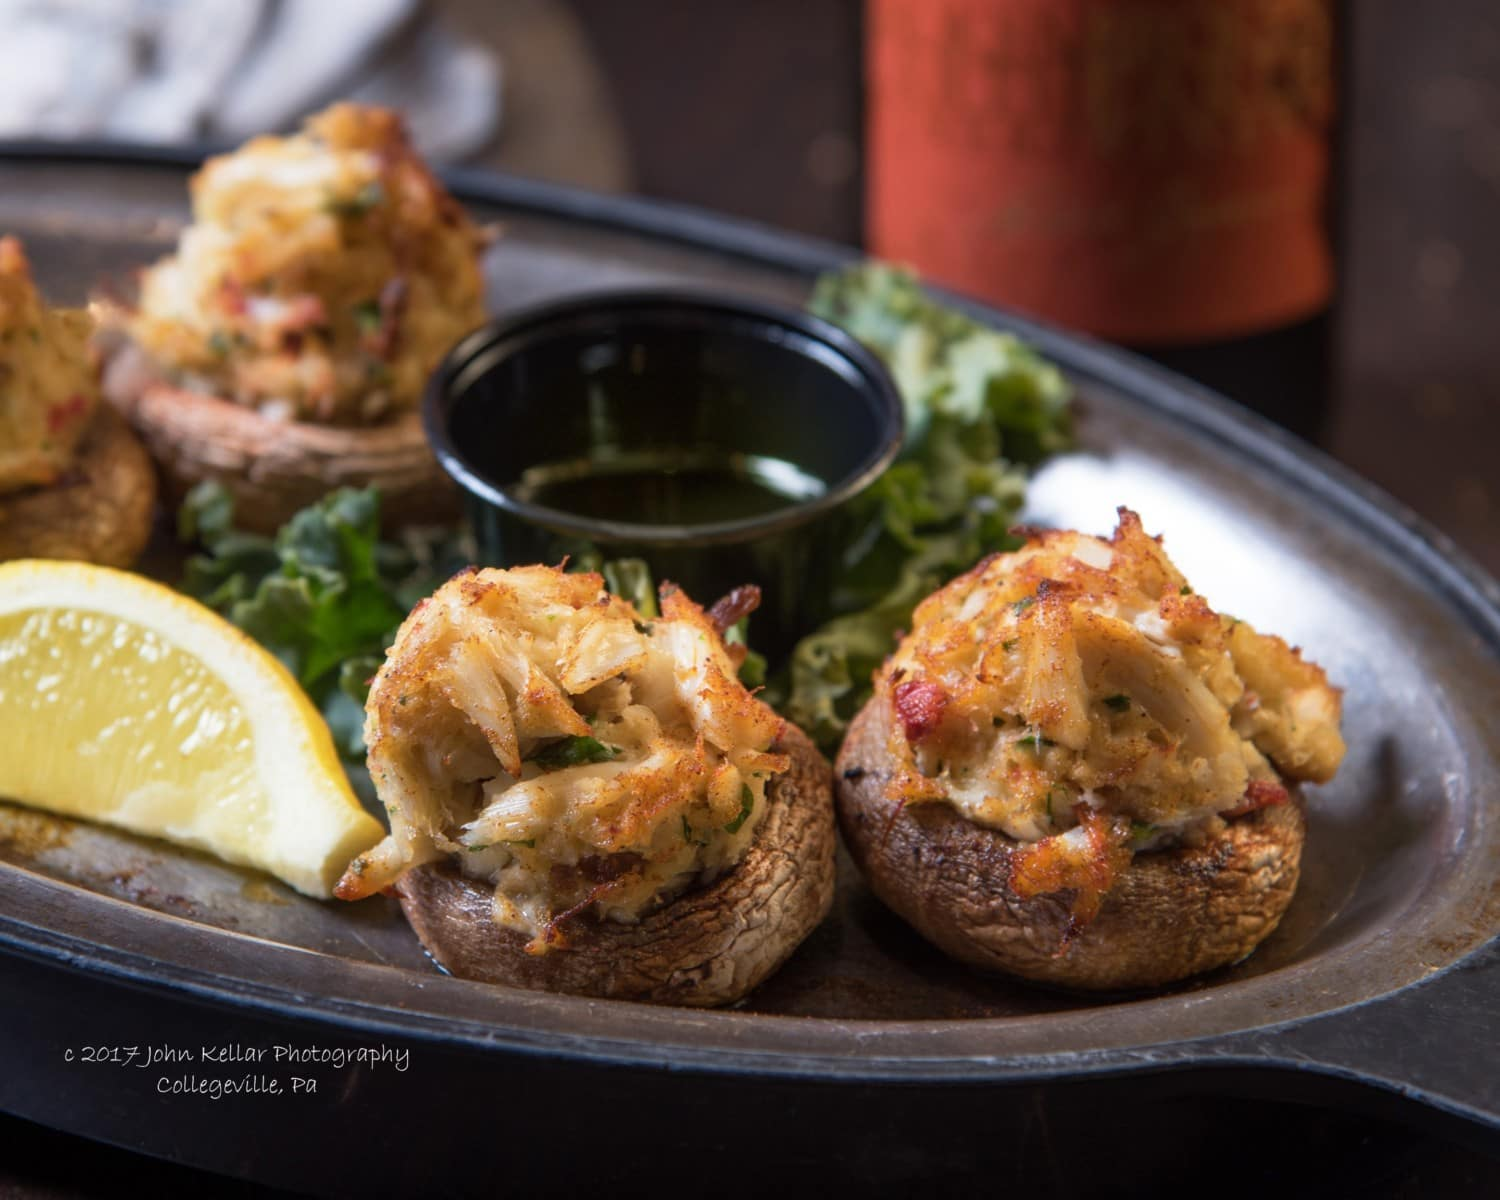 Stuffed mushrooms food photography